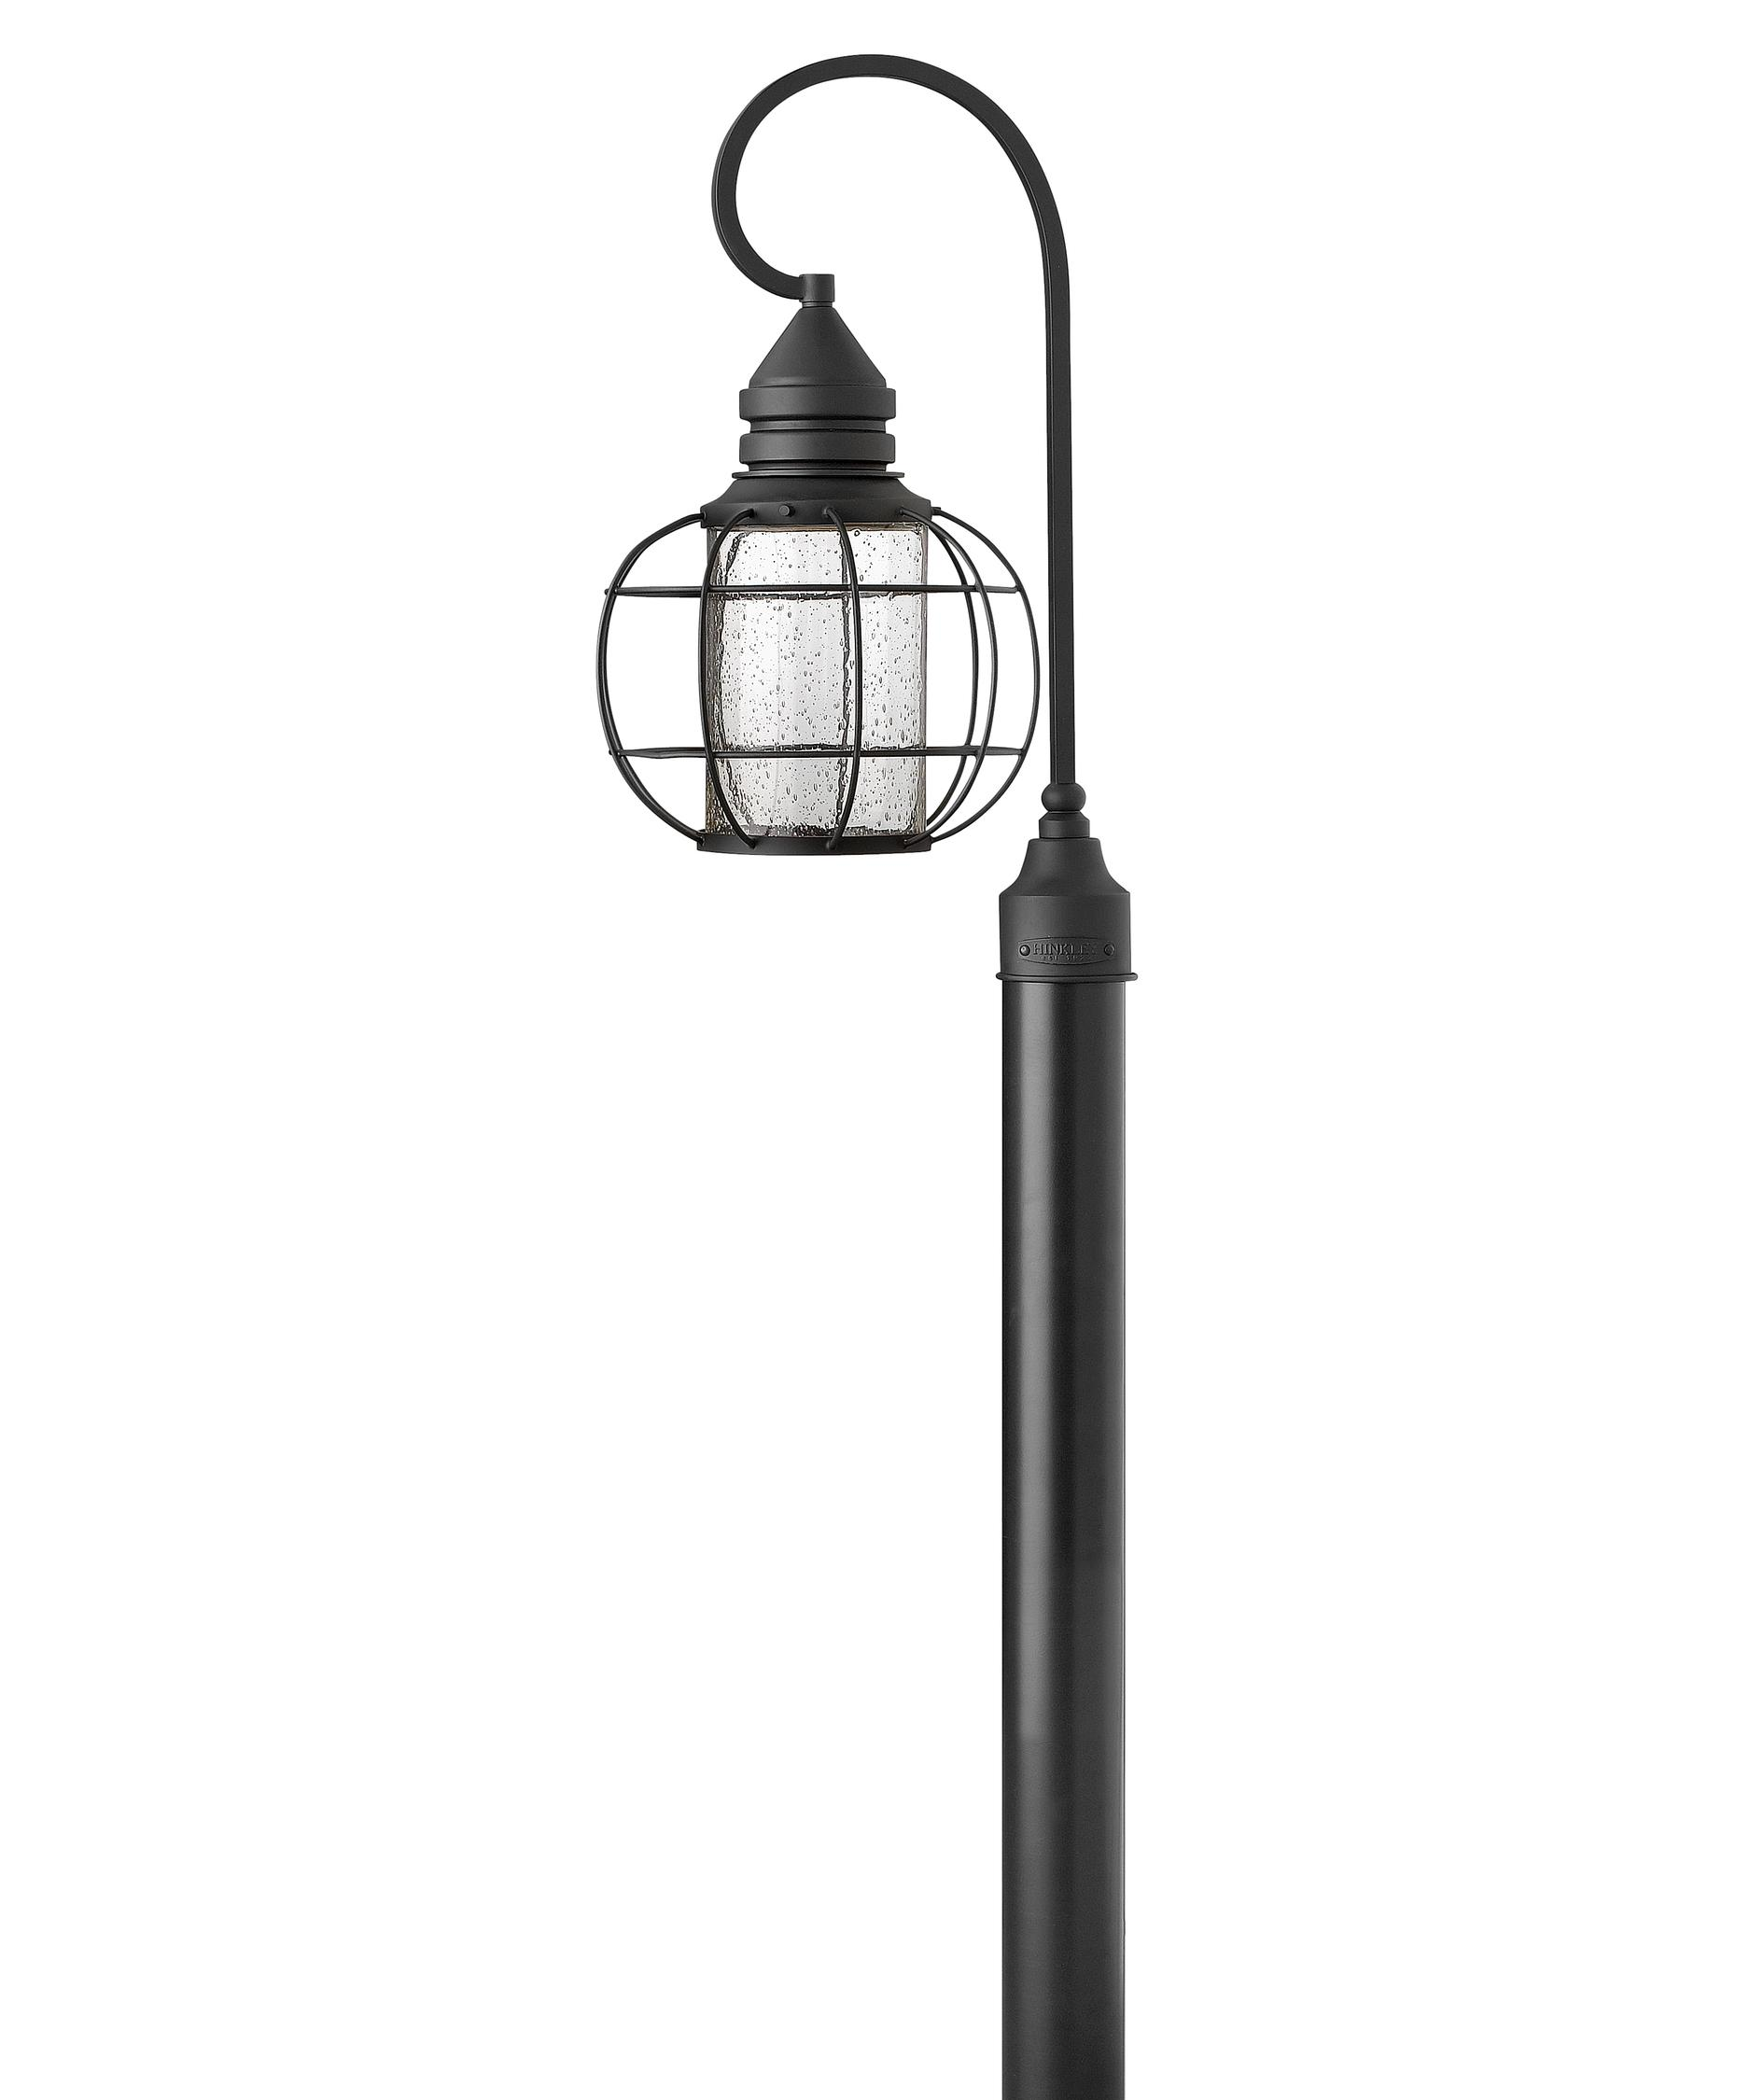 Hinkley Lighting 2251 New Castle 1 Light Outdoor Post Lamp